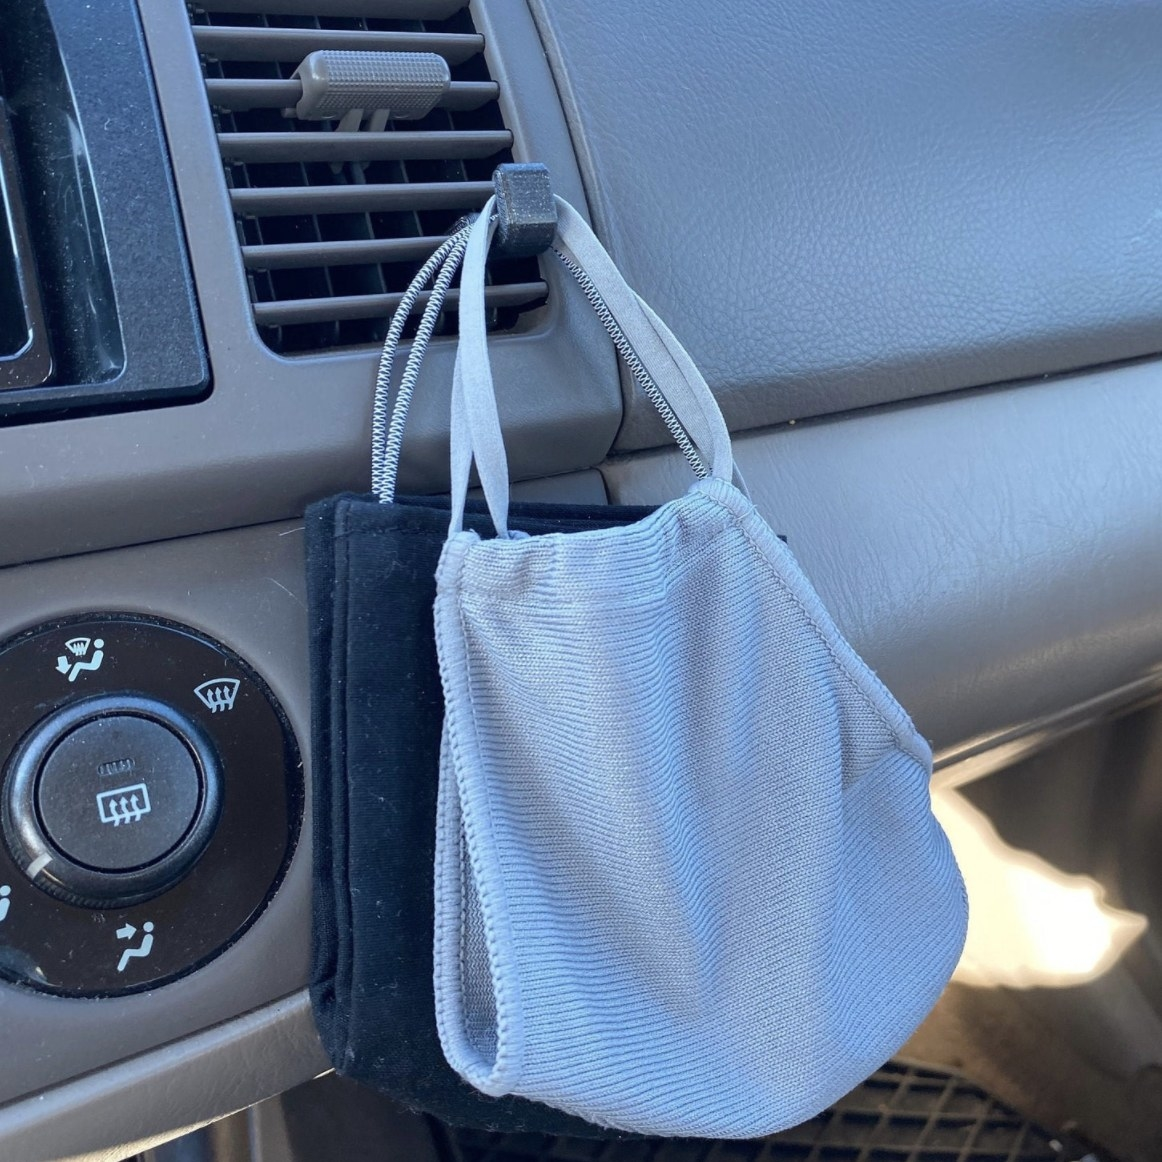 A hook attachment on a car vent holding face masks